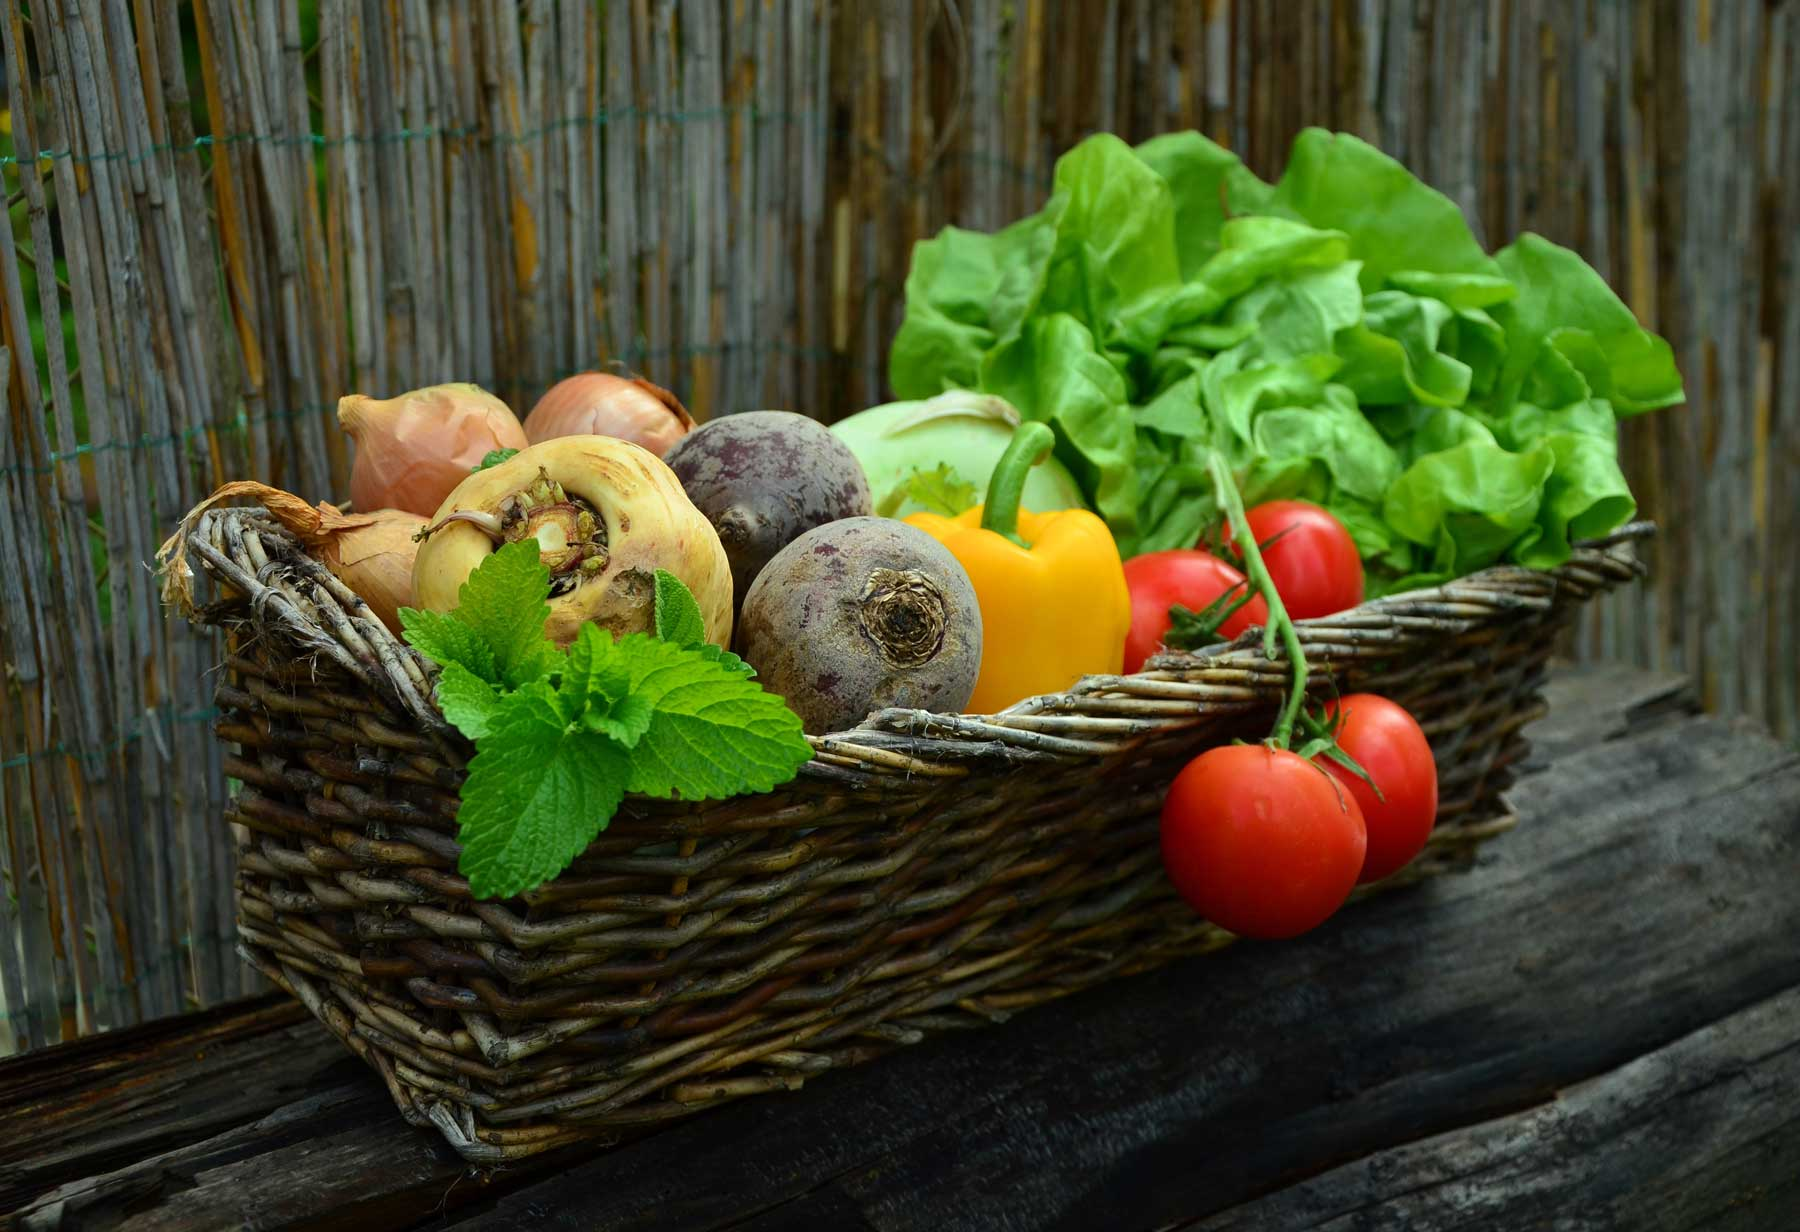 Assortment of vegetable types in basket. Root, fruiting, and leafy veg